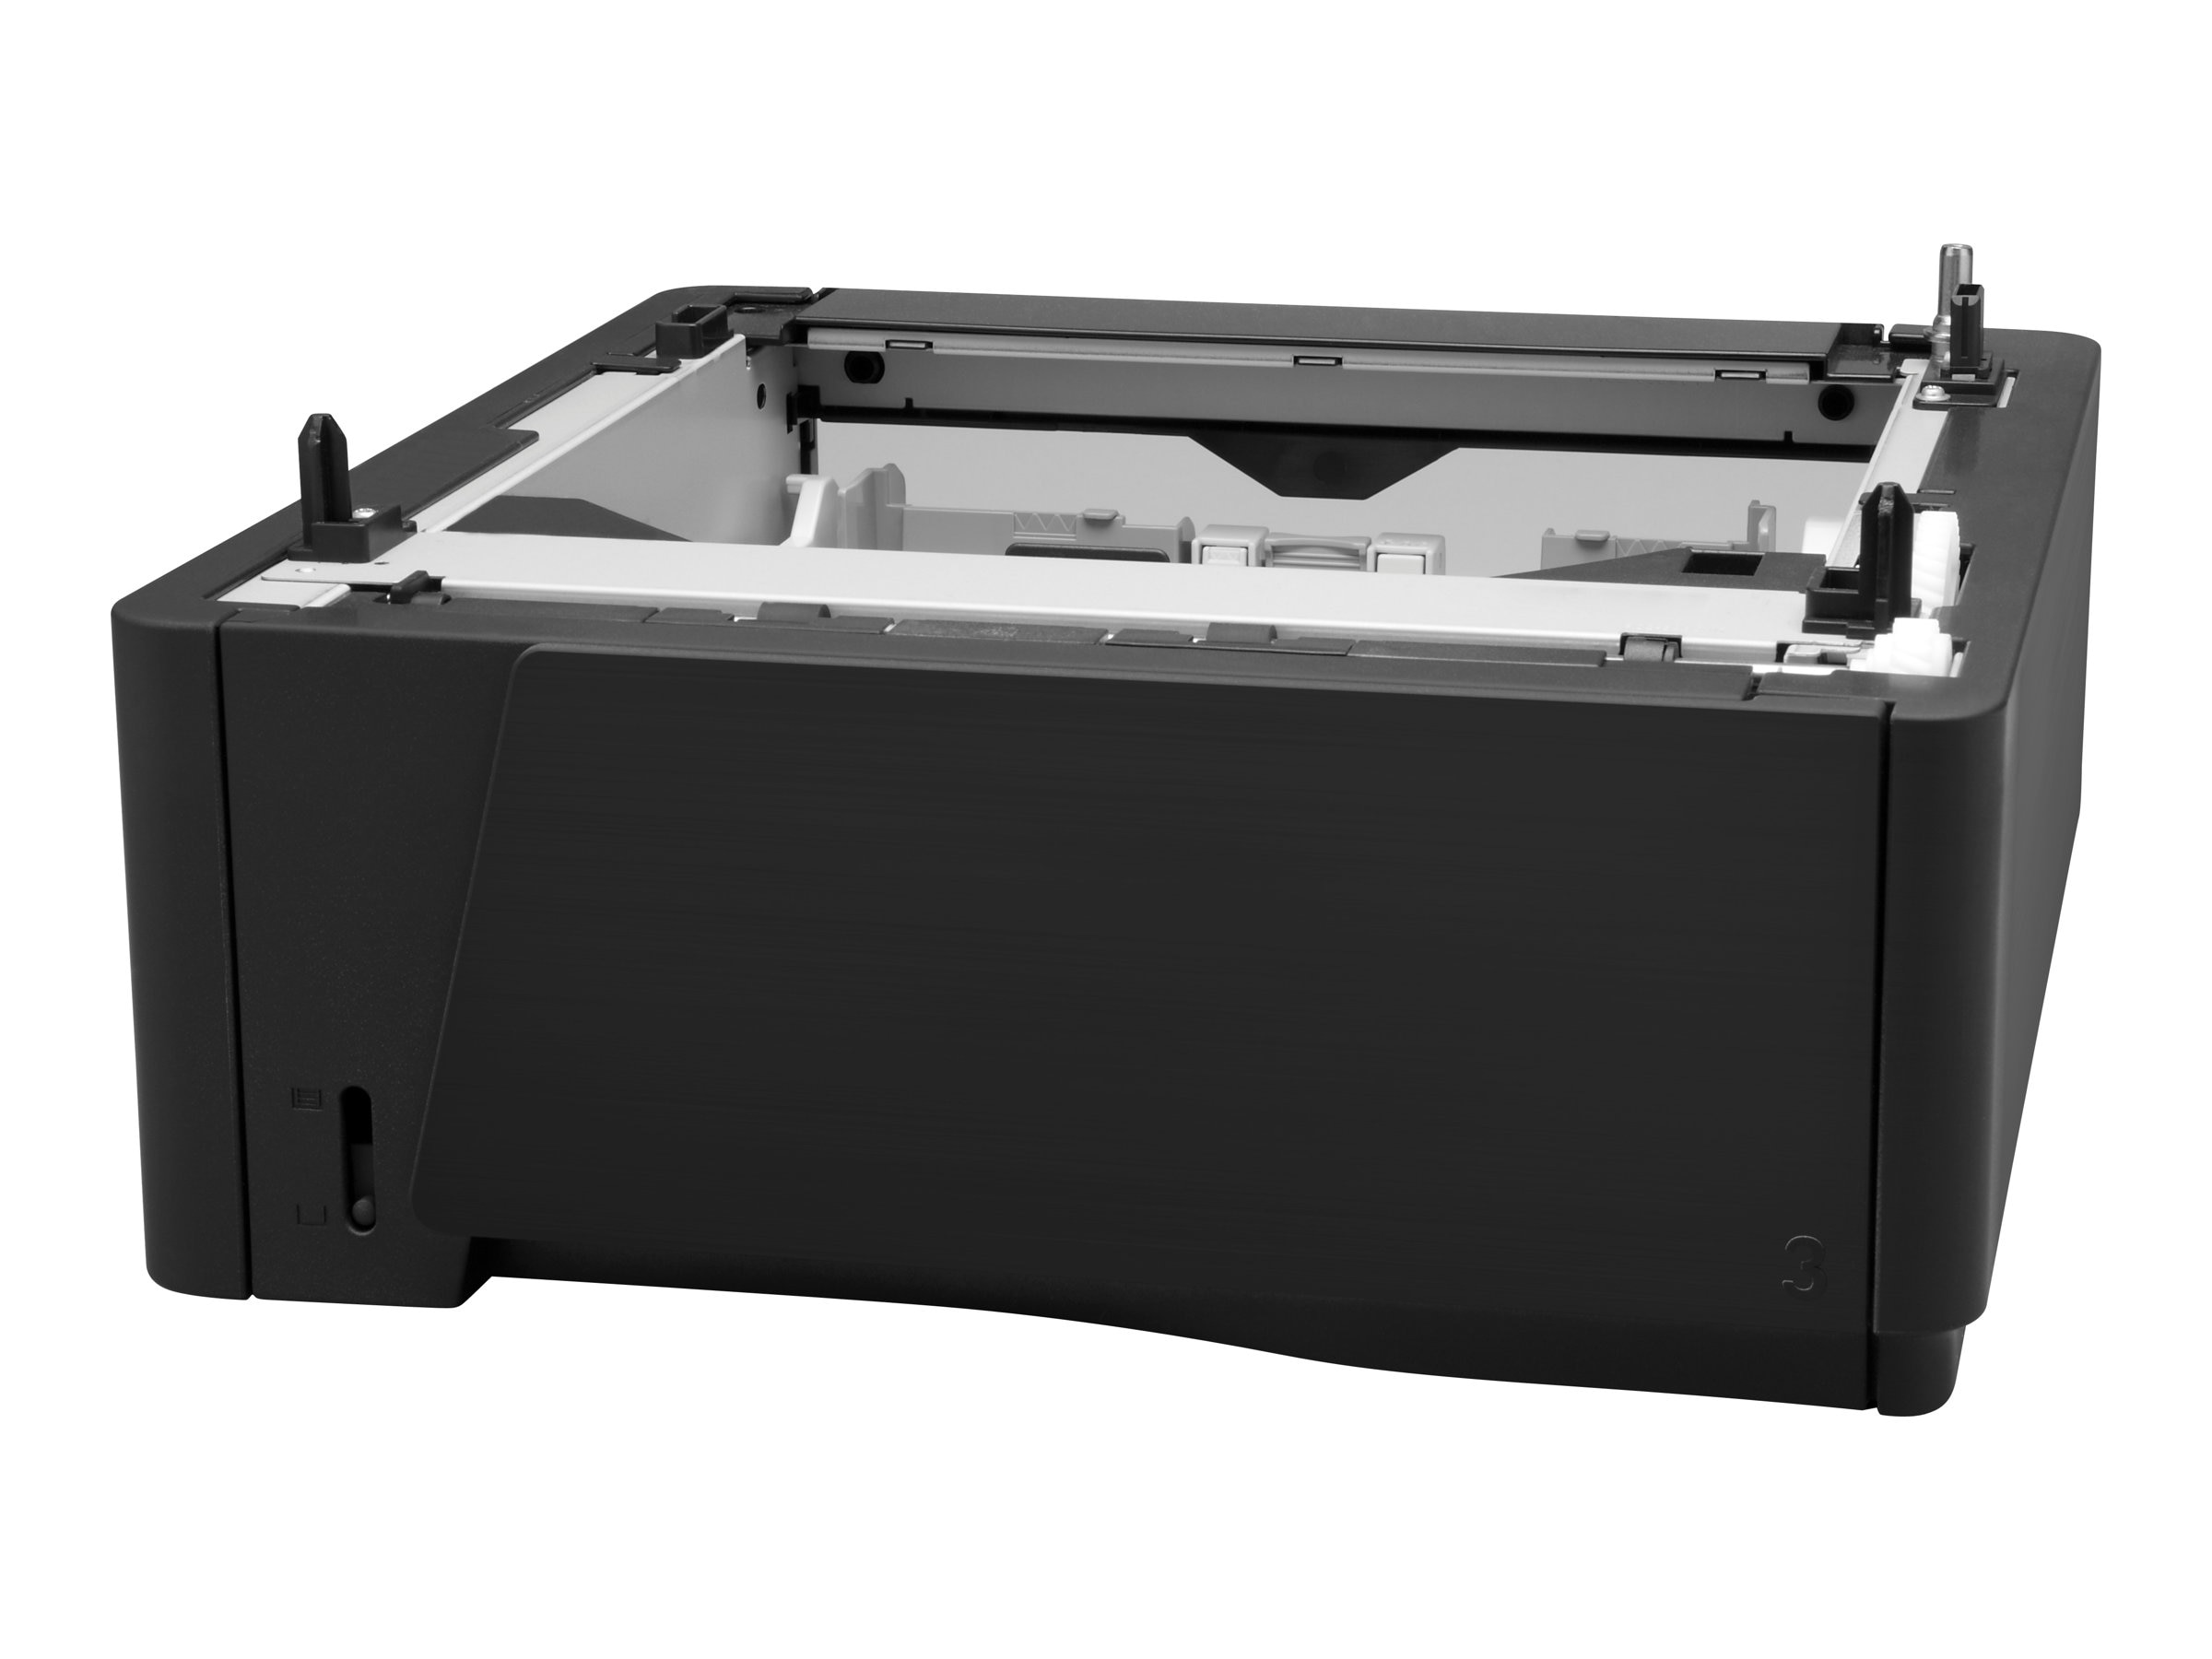 HP LaserJet 500-sheet Feeder Tray for HP LaserJet Pro 400 MFP M425, CF406A, 14281860, Printers - Input Trays/Feeders